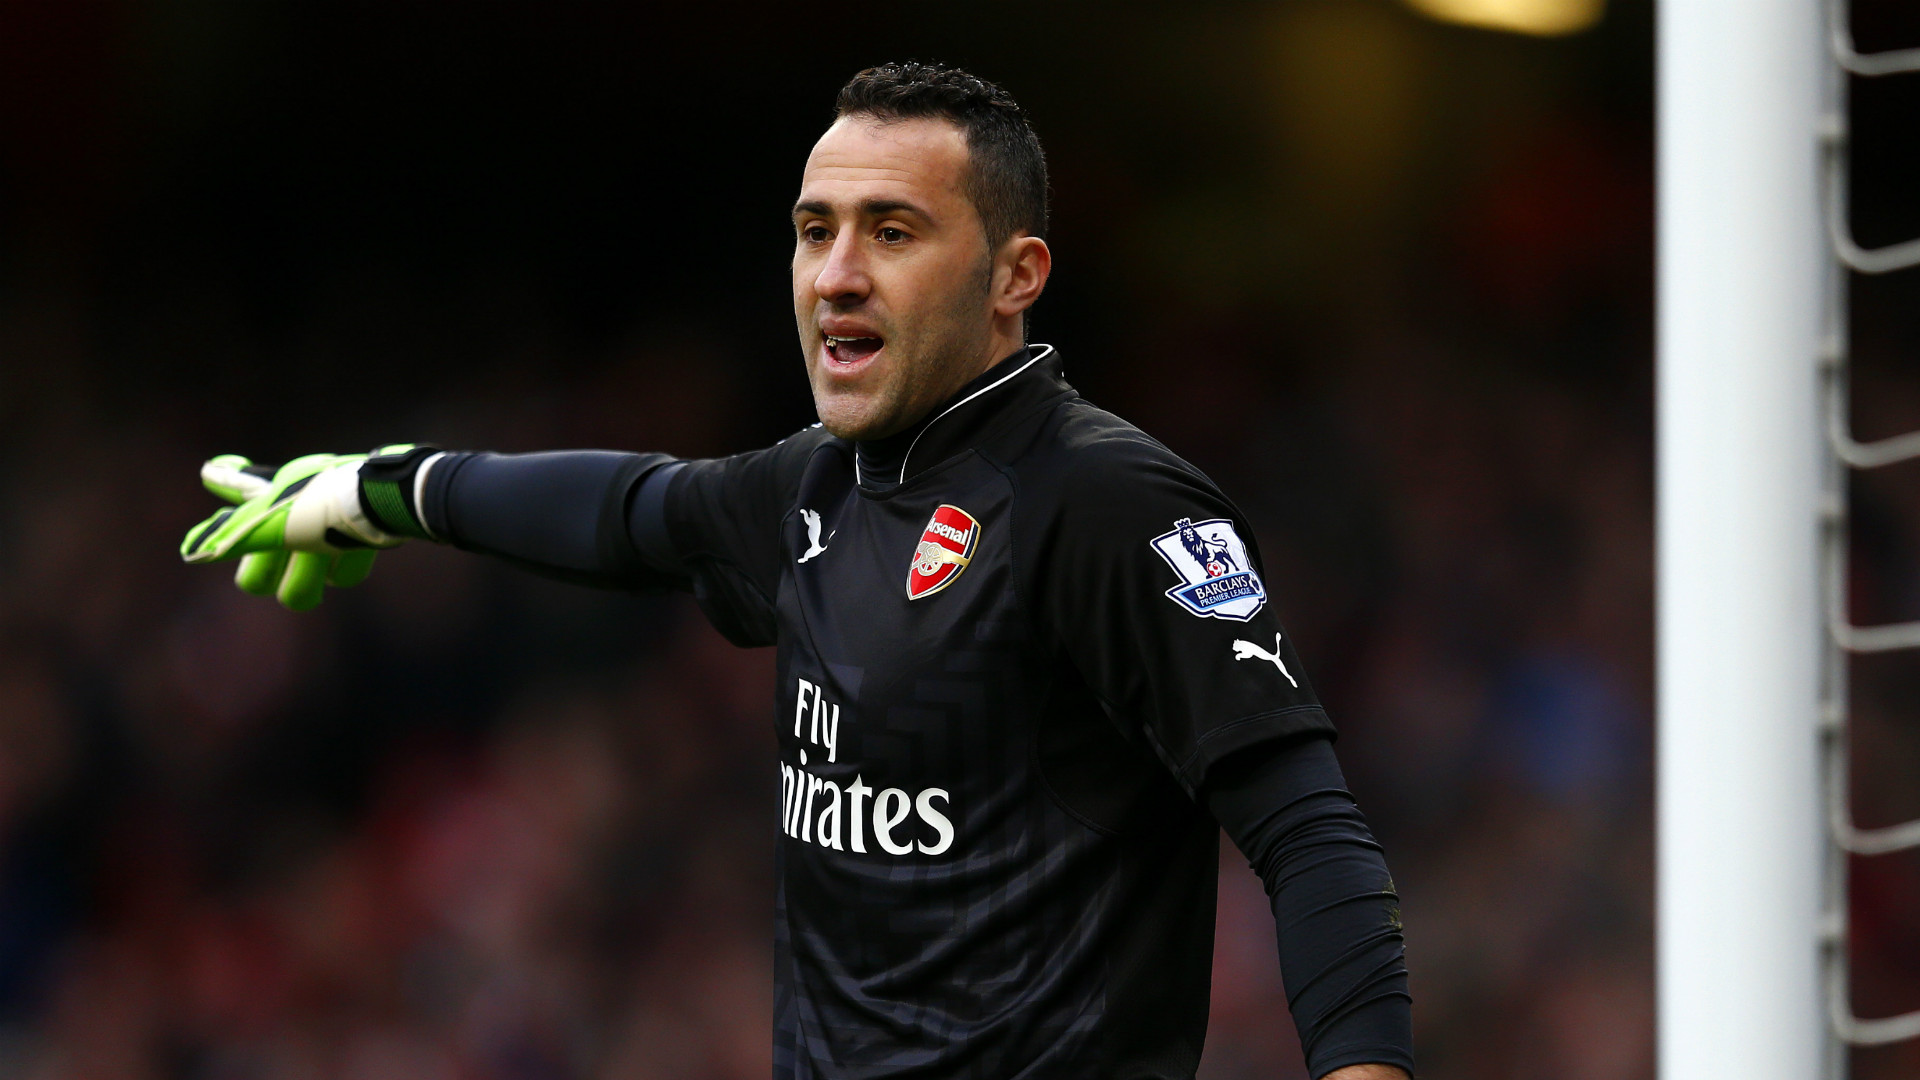 david ospina arsenal footballer Wallpaper HD Sports 4K 1920x1080